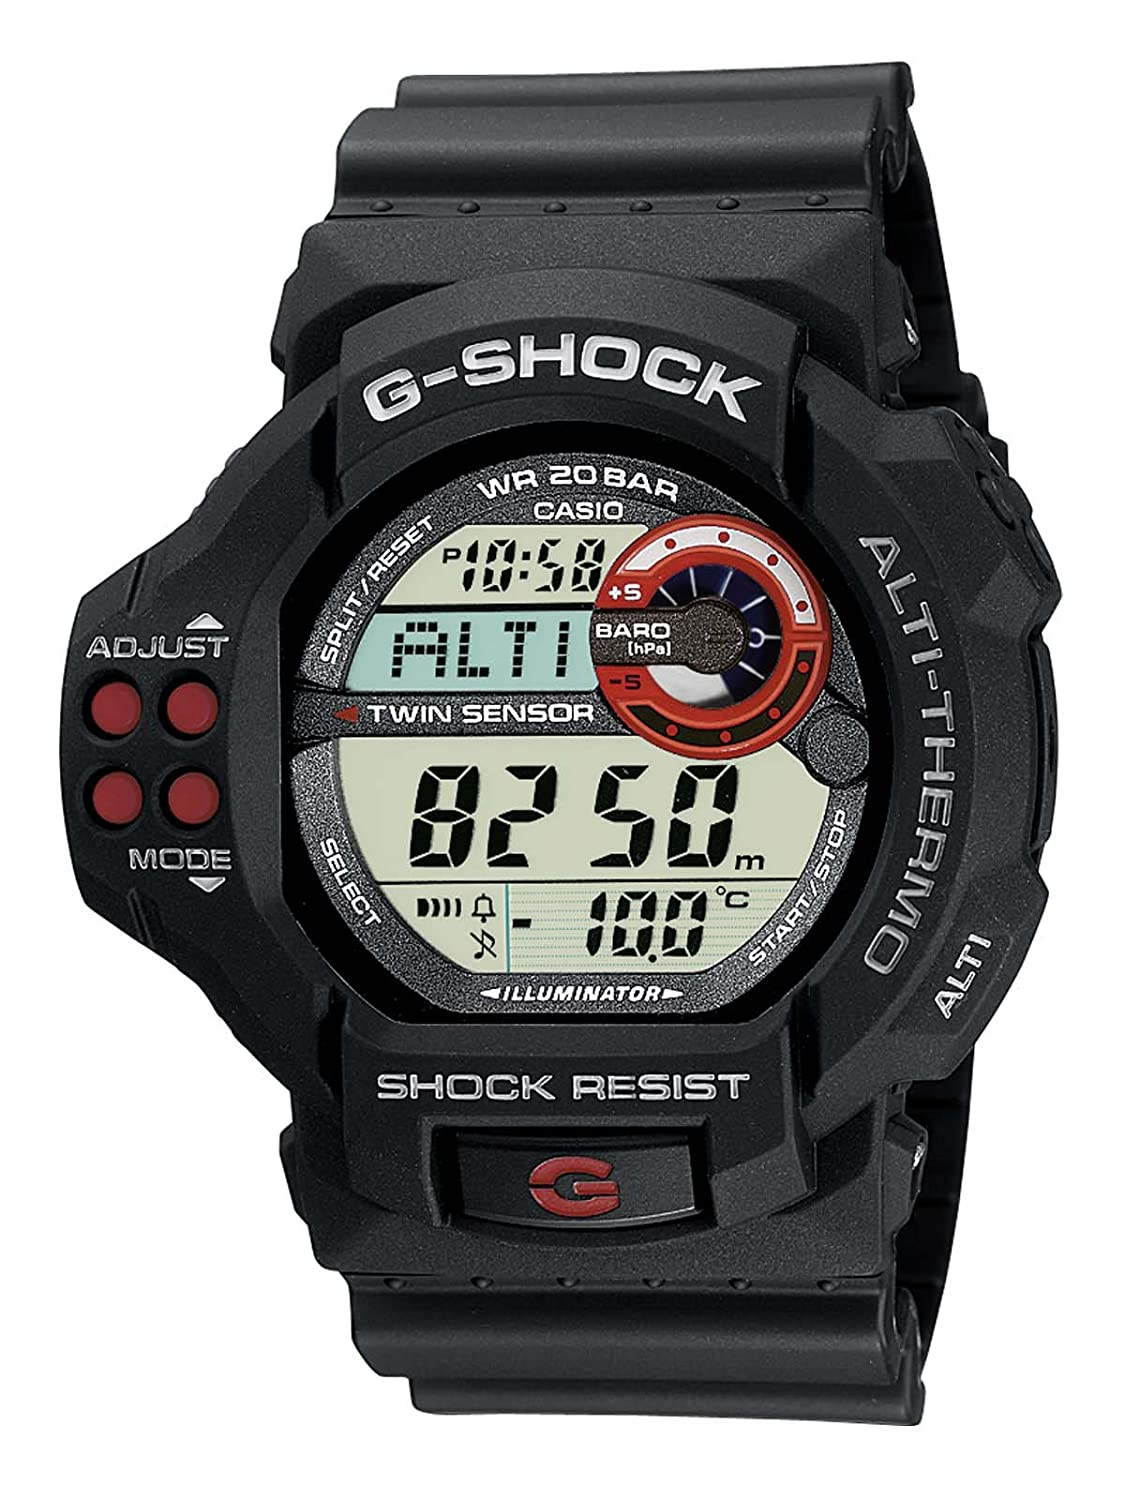 Amazon.com: Casio Mens G-Shock Digital Watch Gdf-100-1Aer With Resin Strap: Watches